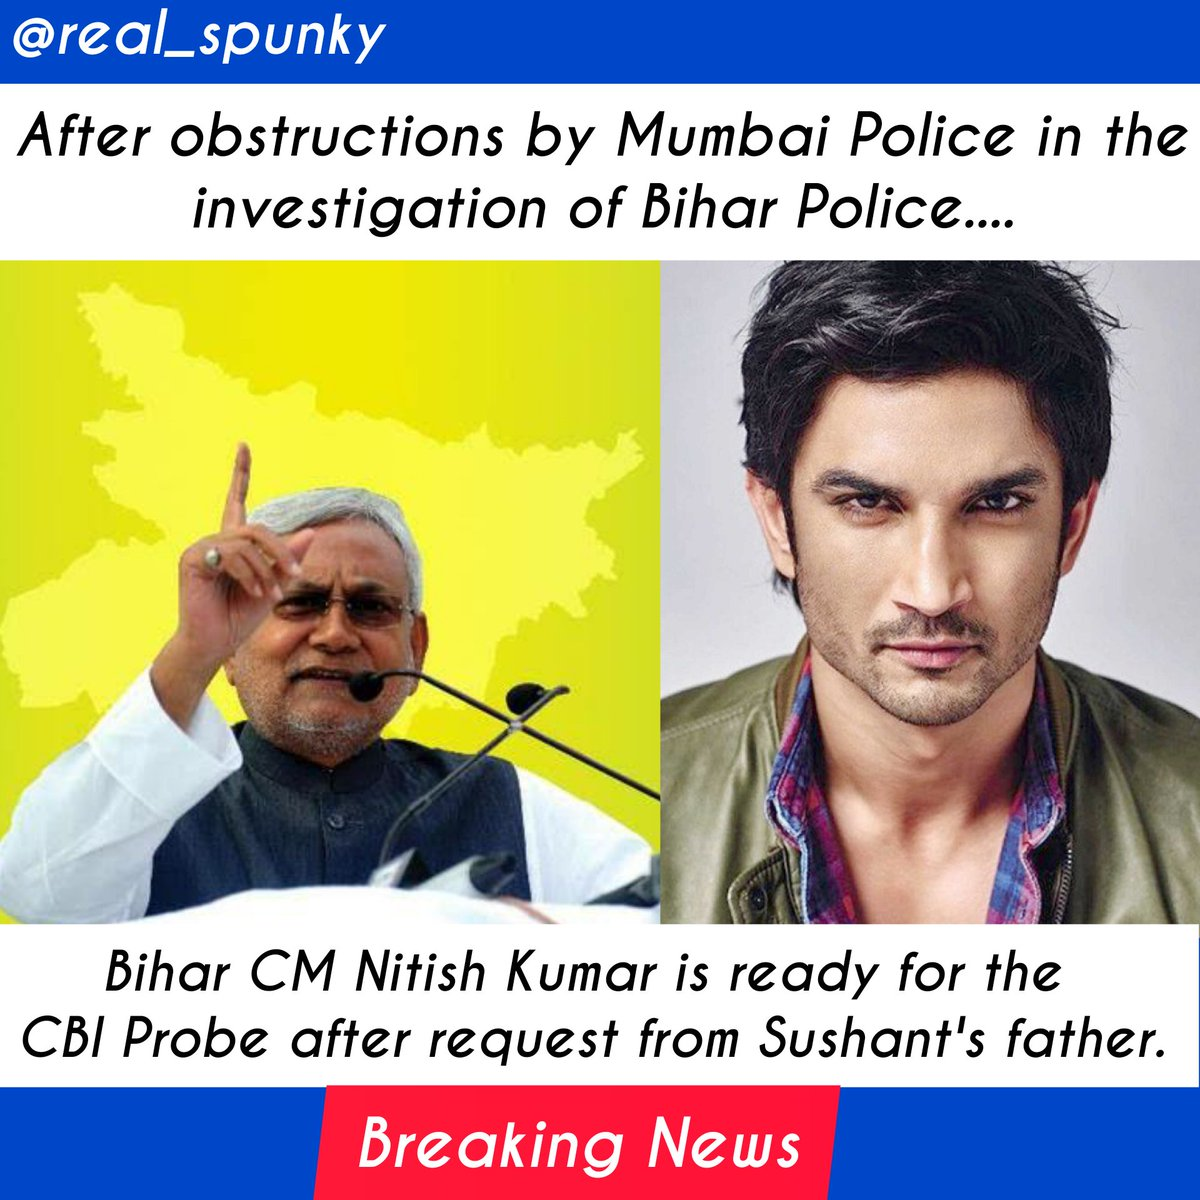 Bigg Breaking 🔥for @itsSSR  Now hope that no culprits would be leaved including biggies😬 🙌 #UddhavResignOrCBI4SSR #CBIforShushant  #MumbaiPoliceExposed